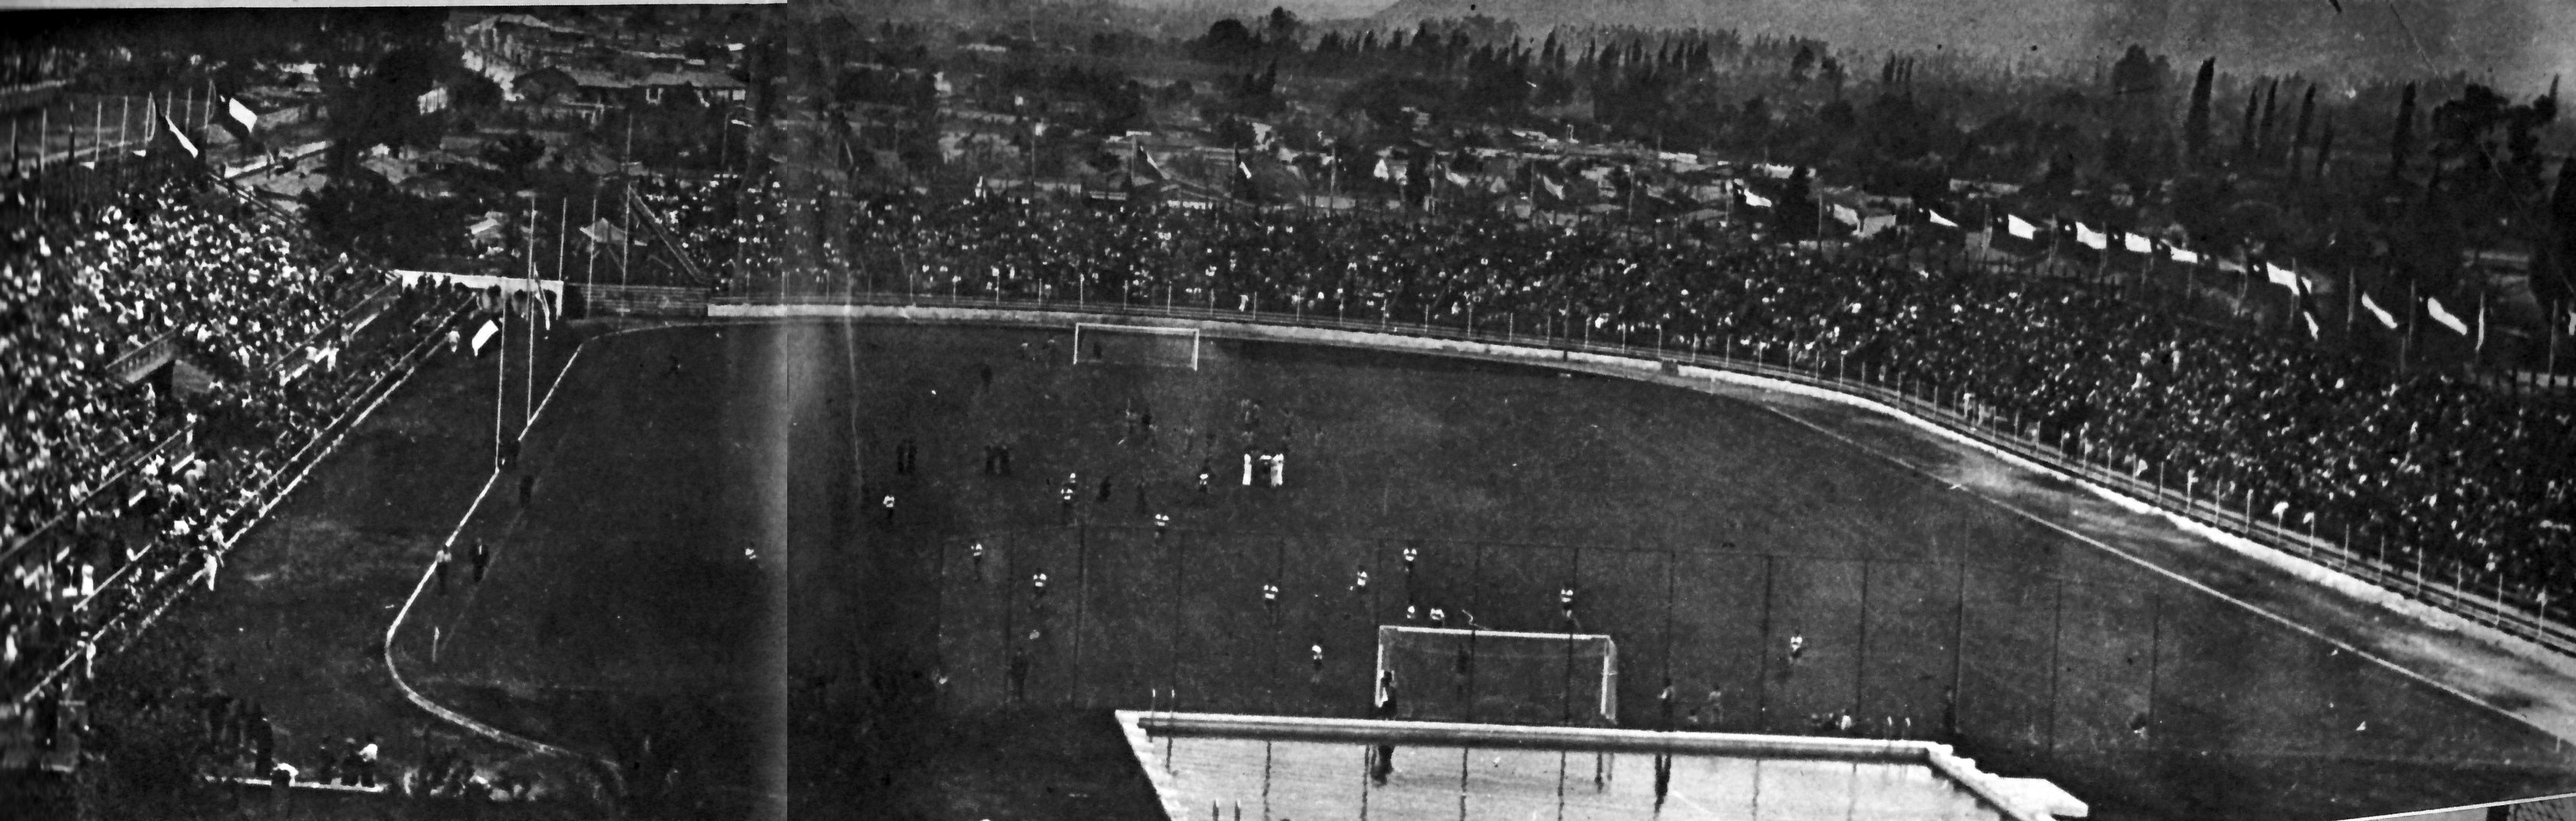 Enterreno - Fotos históricas de chile - fotos antiguas de Chile - Estadio Independencia UC, 1945